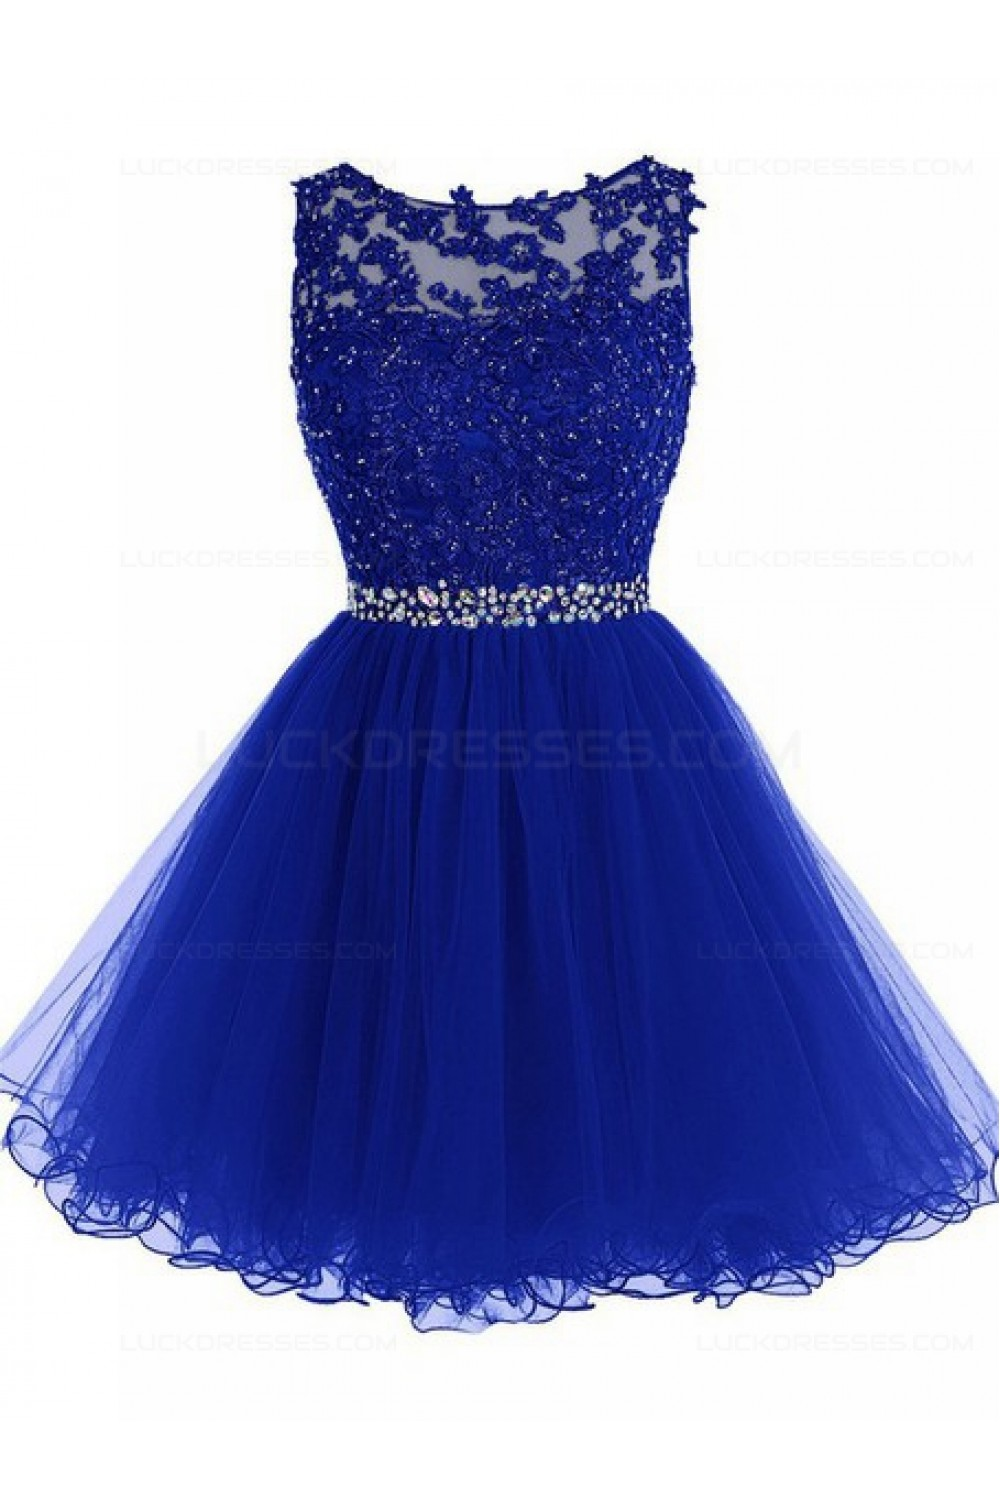 1c6358f206 Beaded Short Royal Blue Lace Appliques Tulle Prom Evening ...